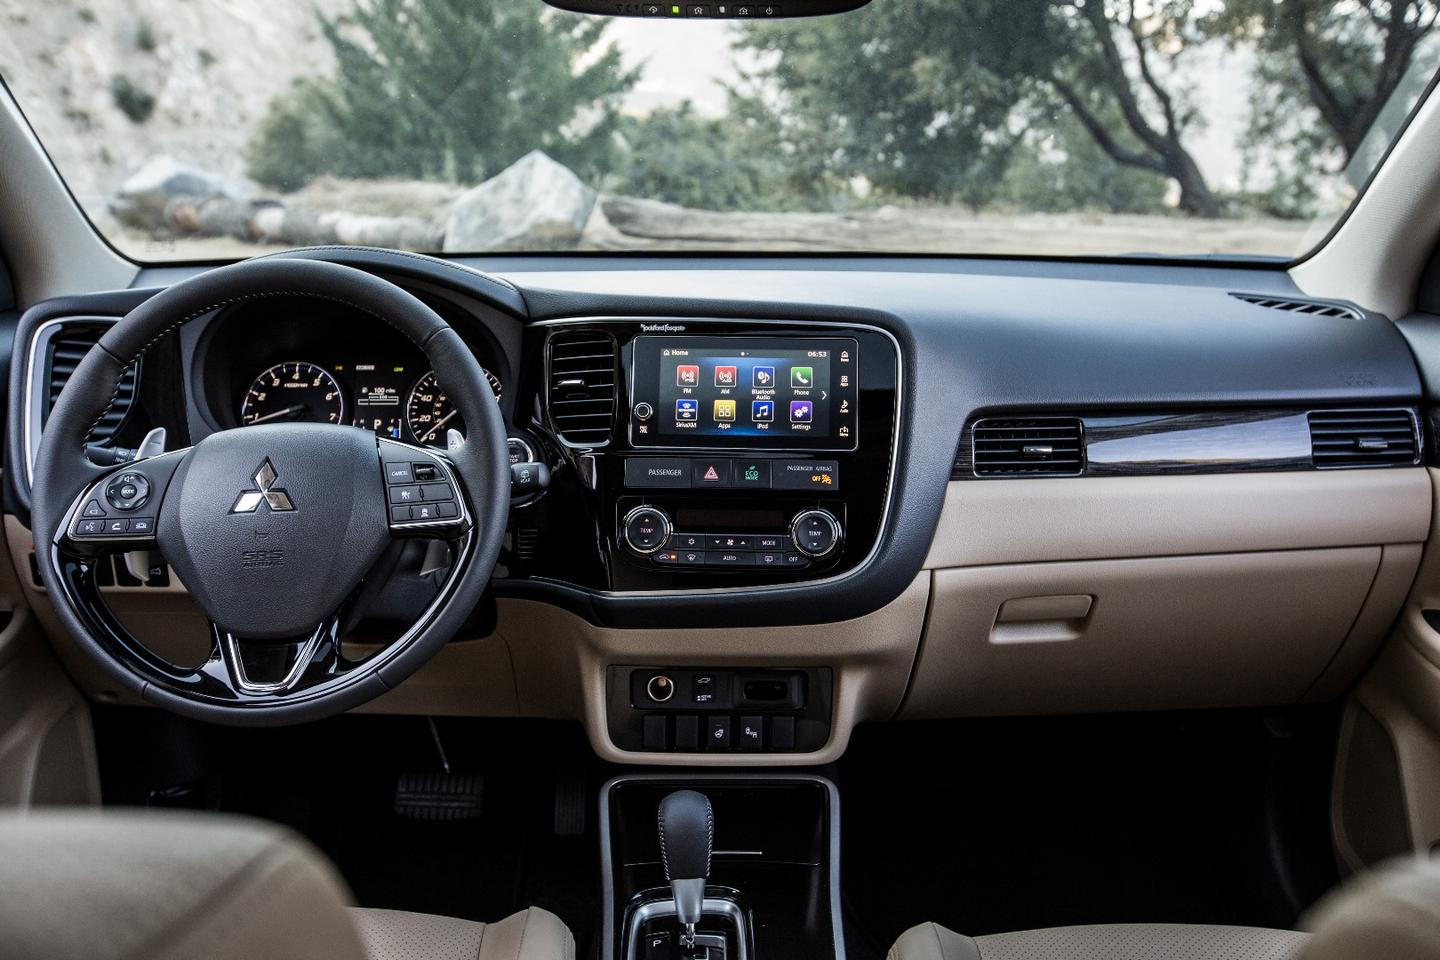 Inside the 2018 Outlander, the interior is rather plain and unadorned